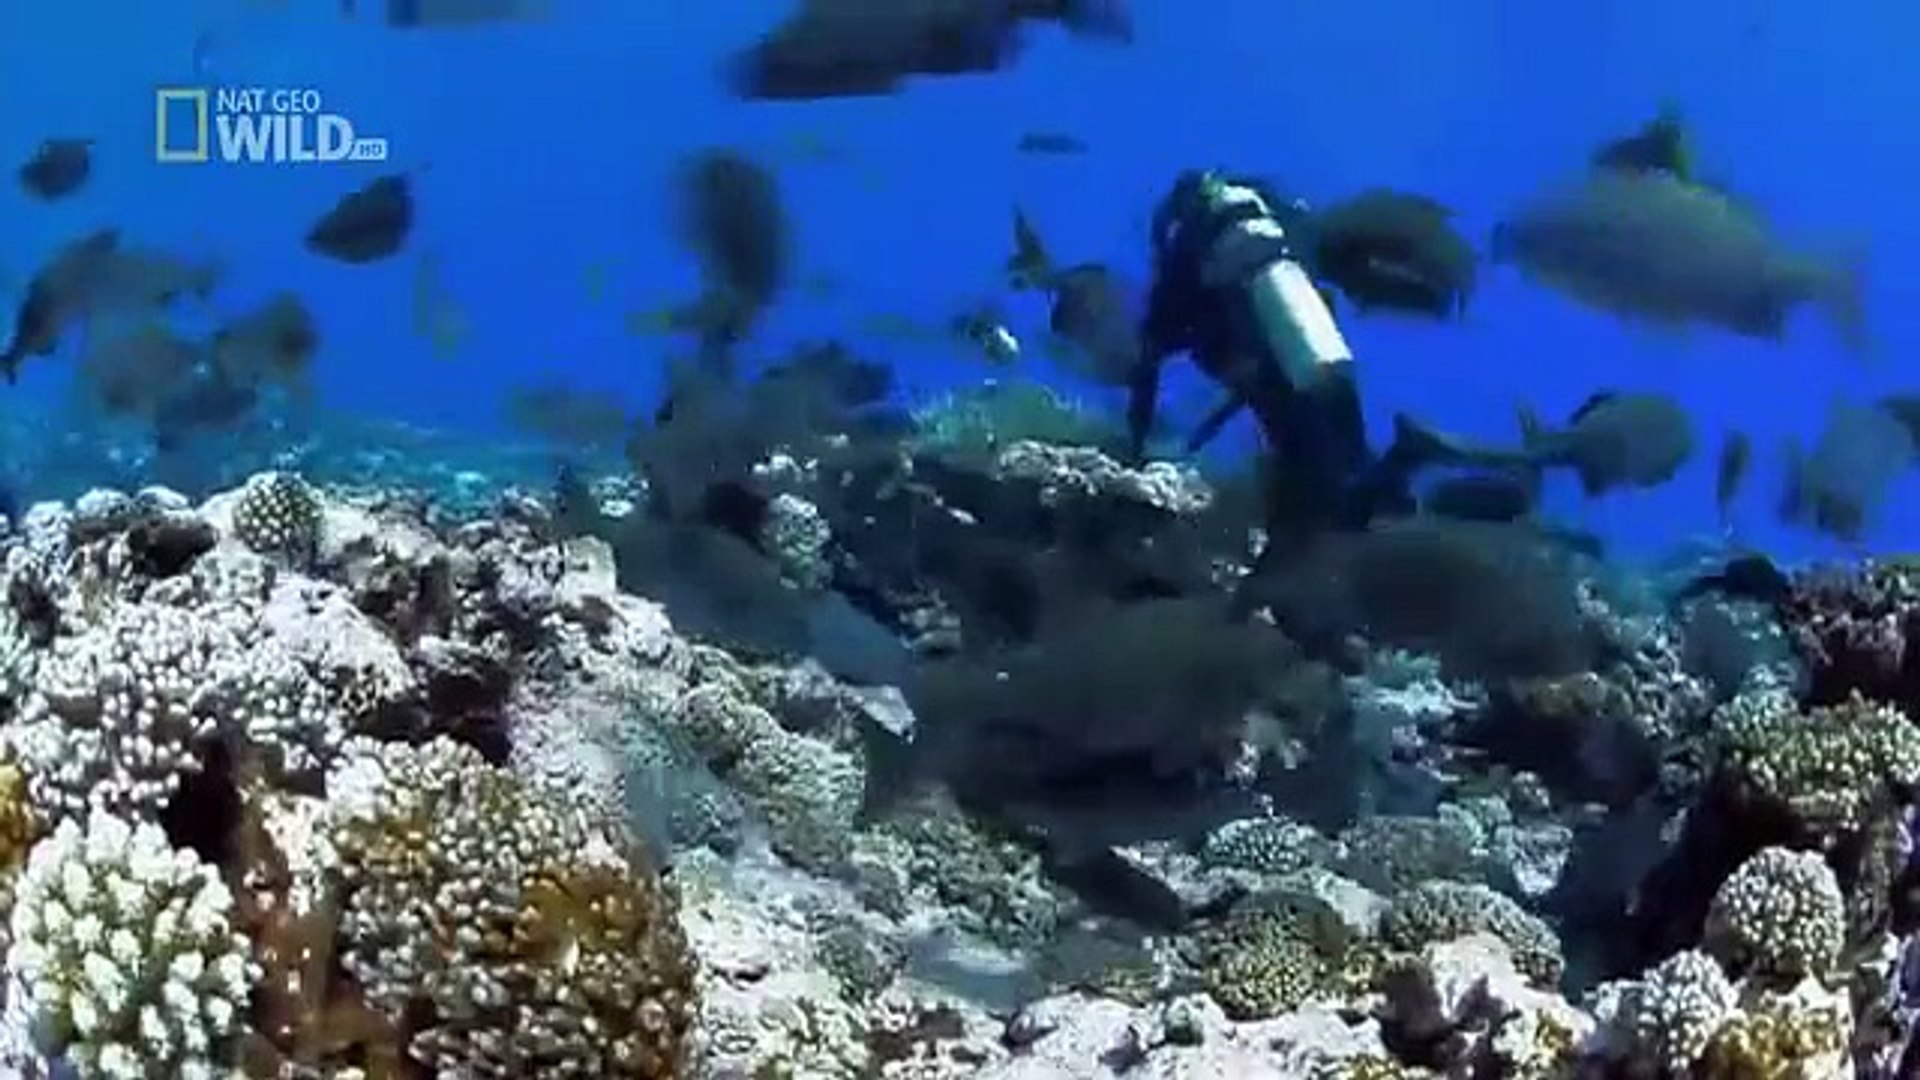 Wild discovery channel animals - Shark Of Lost Island National Geographic documentary Animal planet